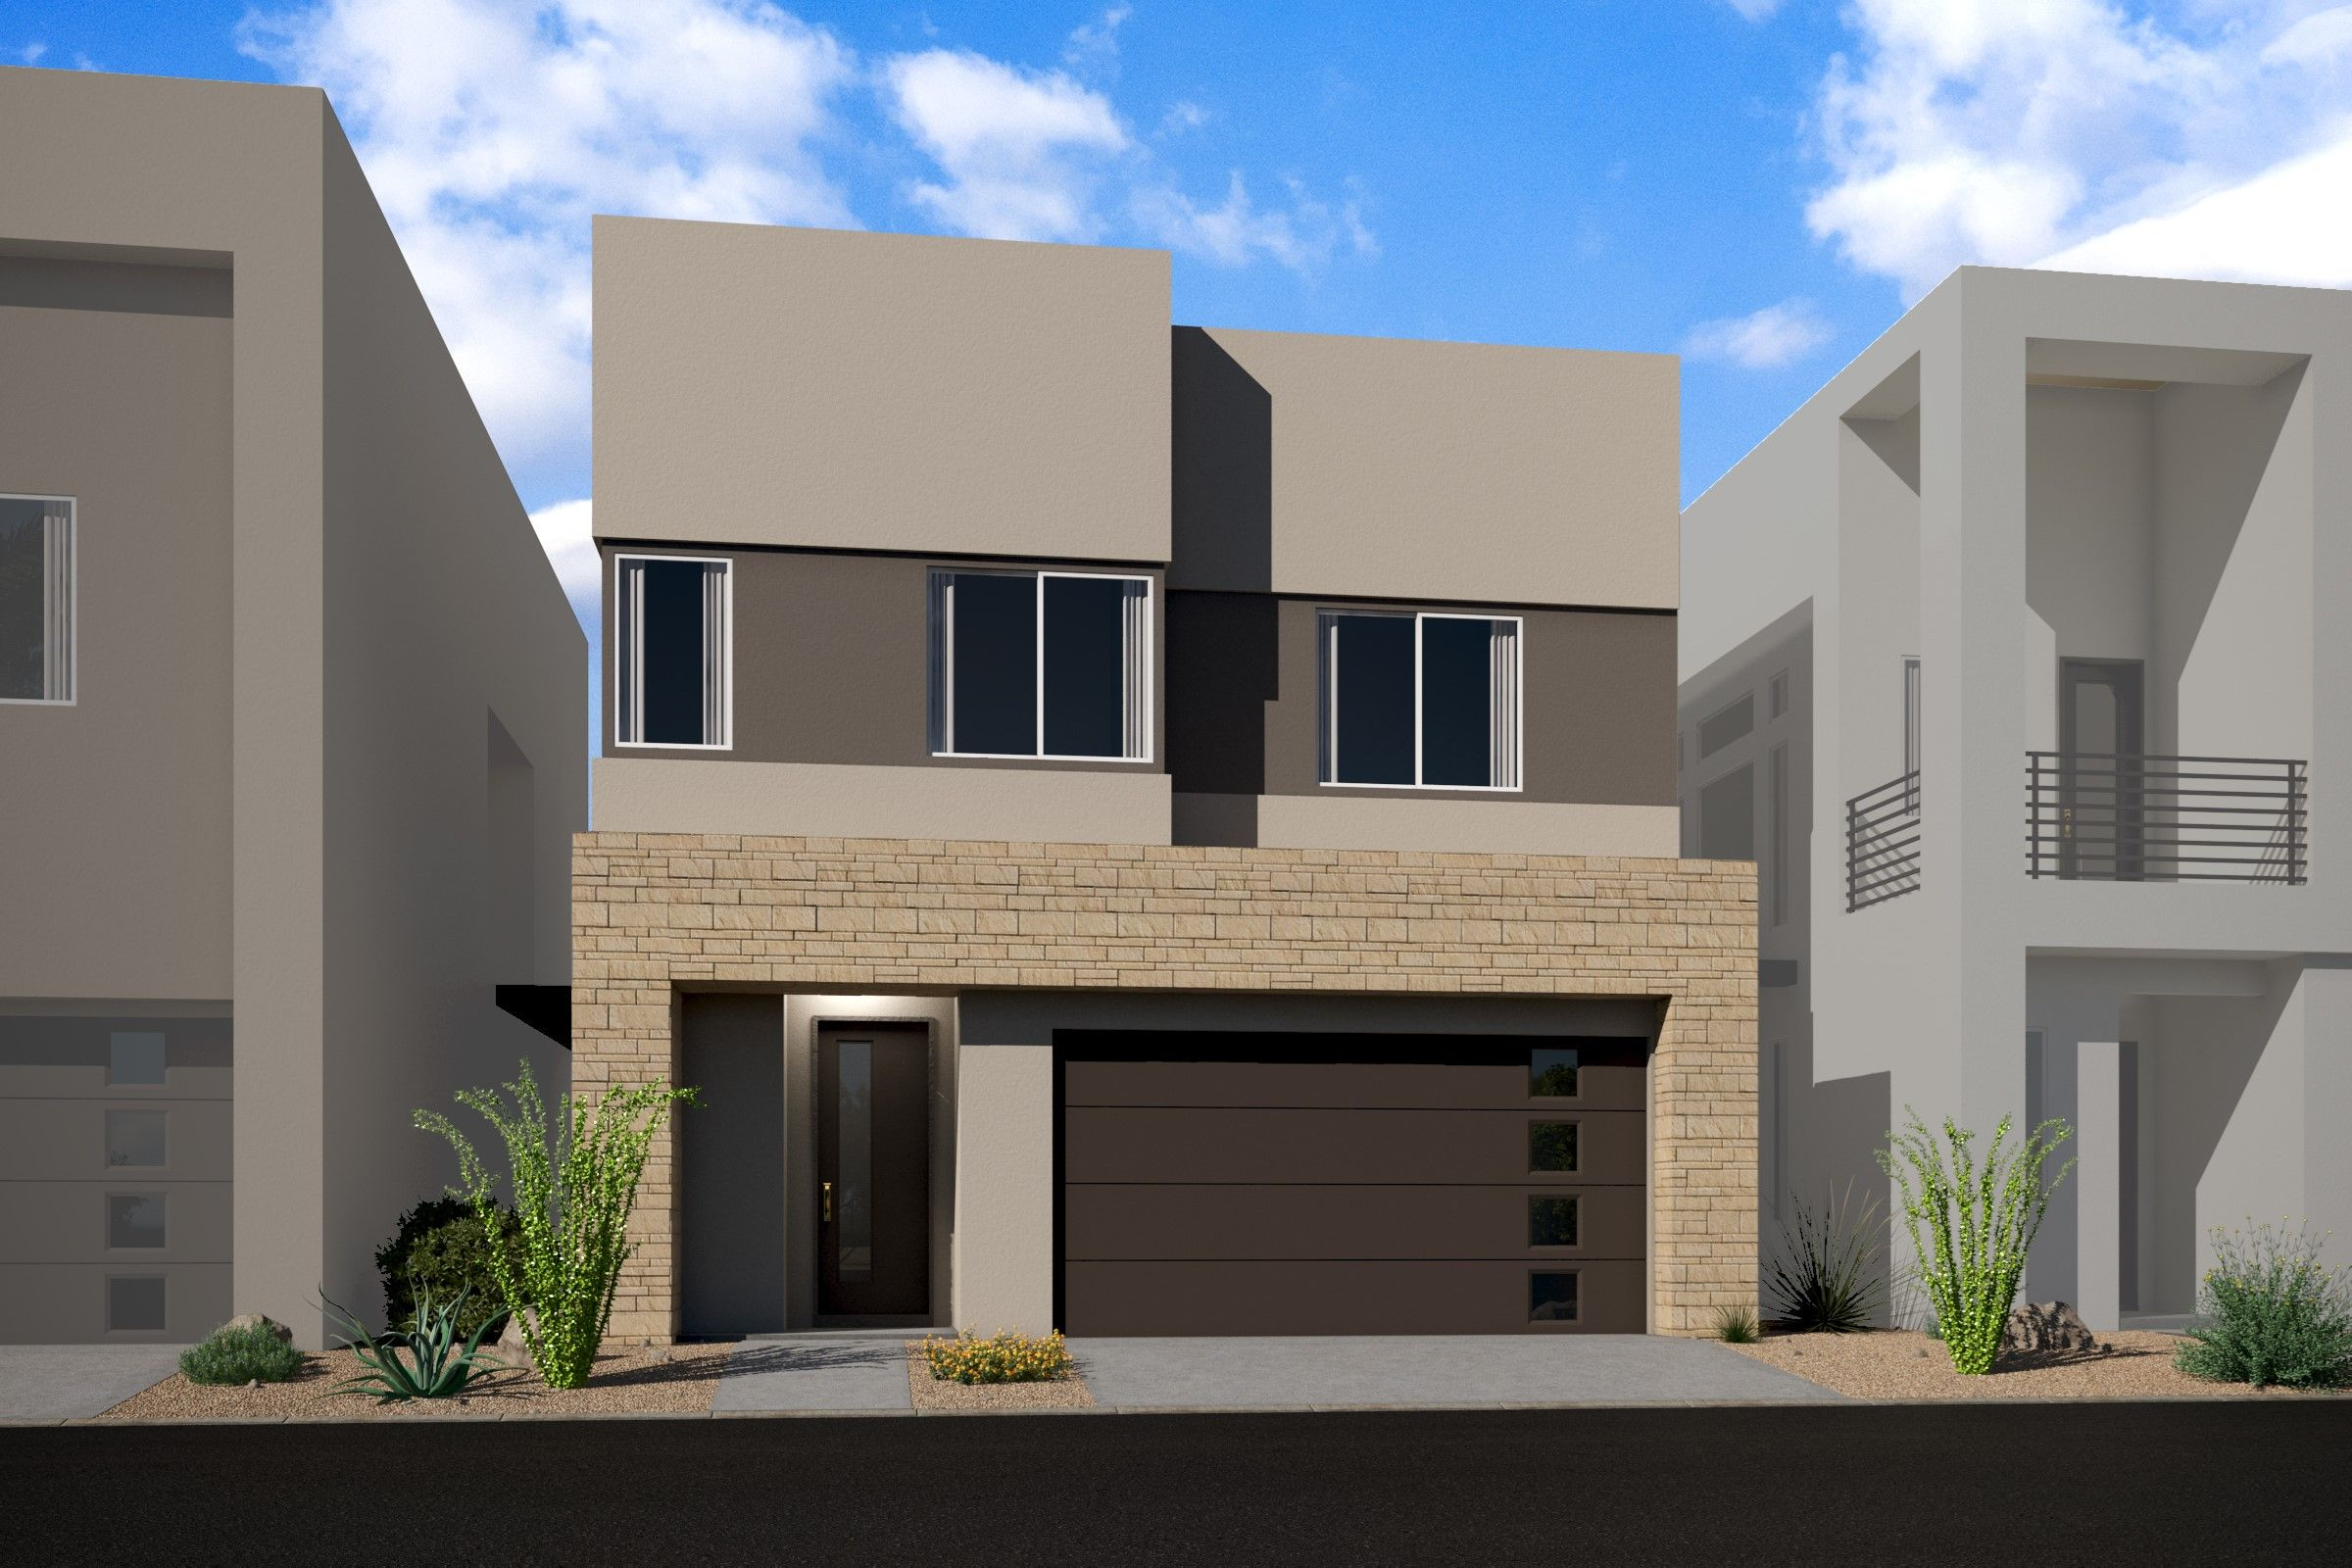 Single Family for Sale at Skye - Concerto 68th Street And Mcdowell Rd Scottsdale, Arizona 85257 United States